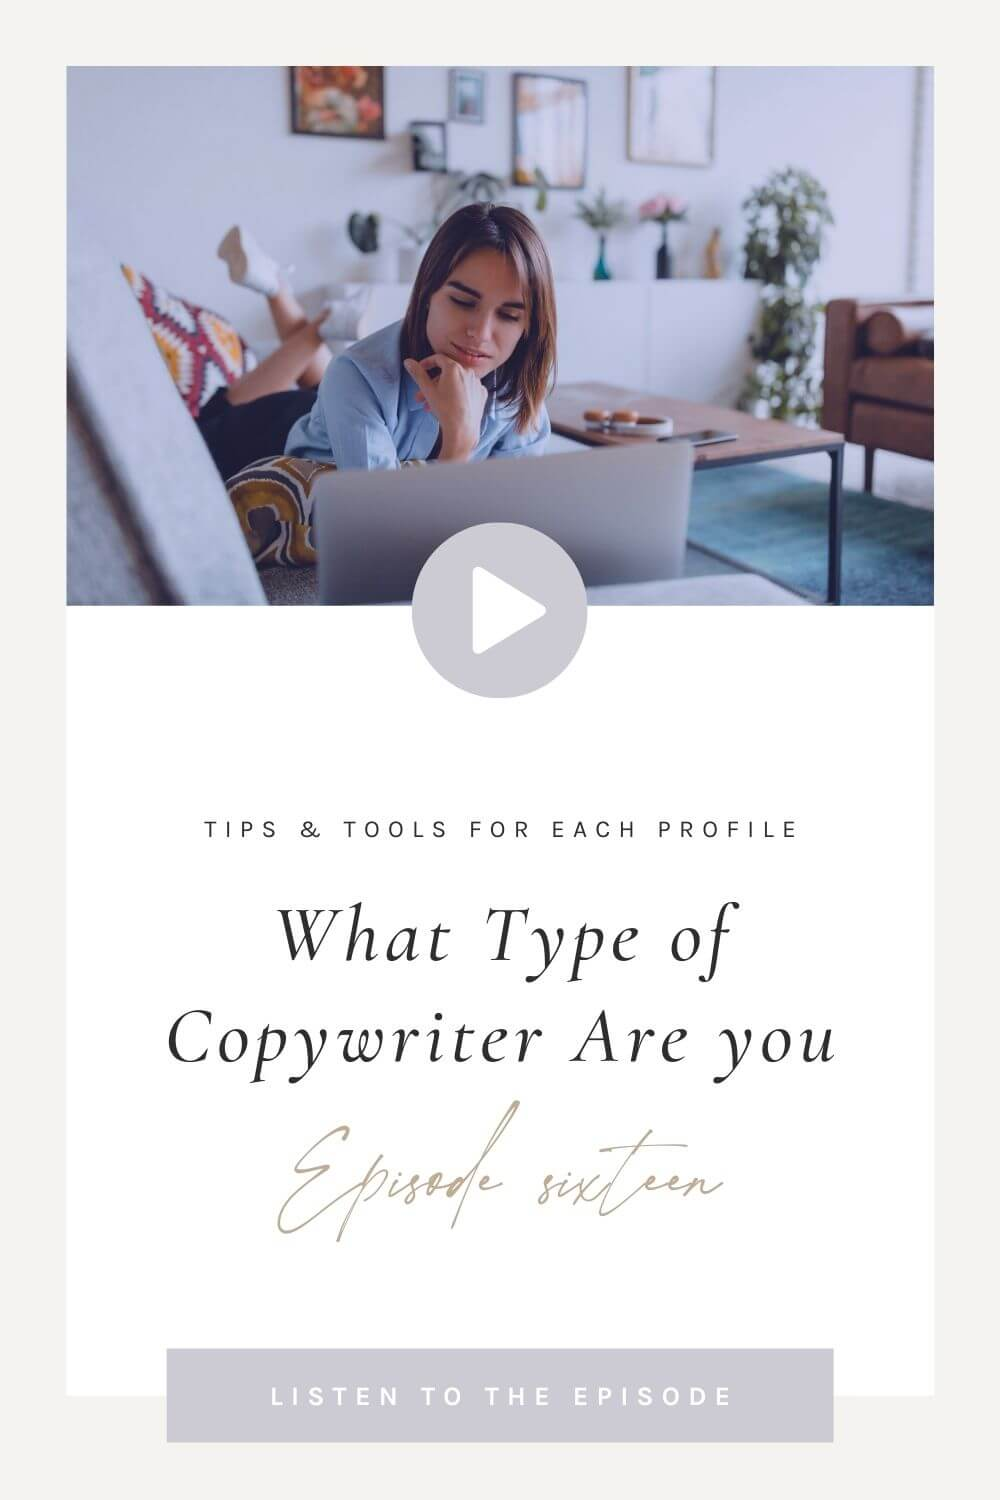 Pinterest Pin with Episode Title and dark-haired woman lying on the couch reading on her laptop